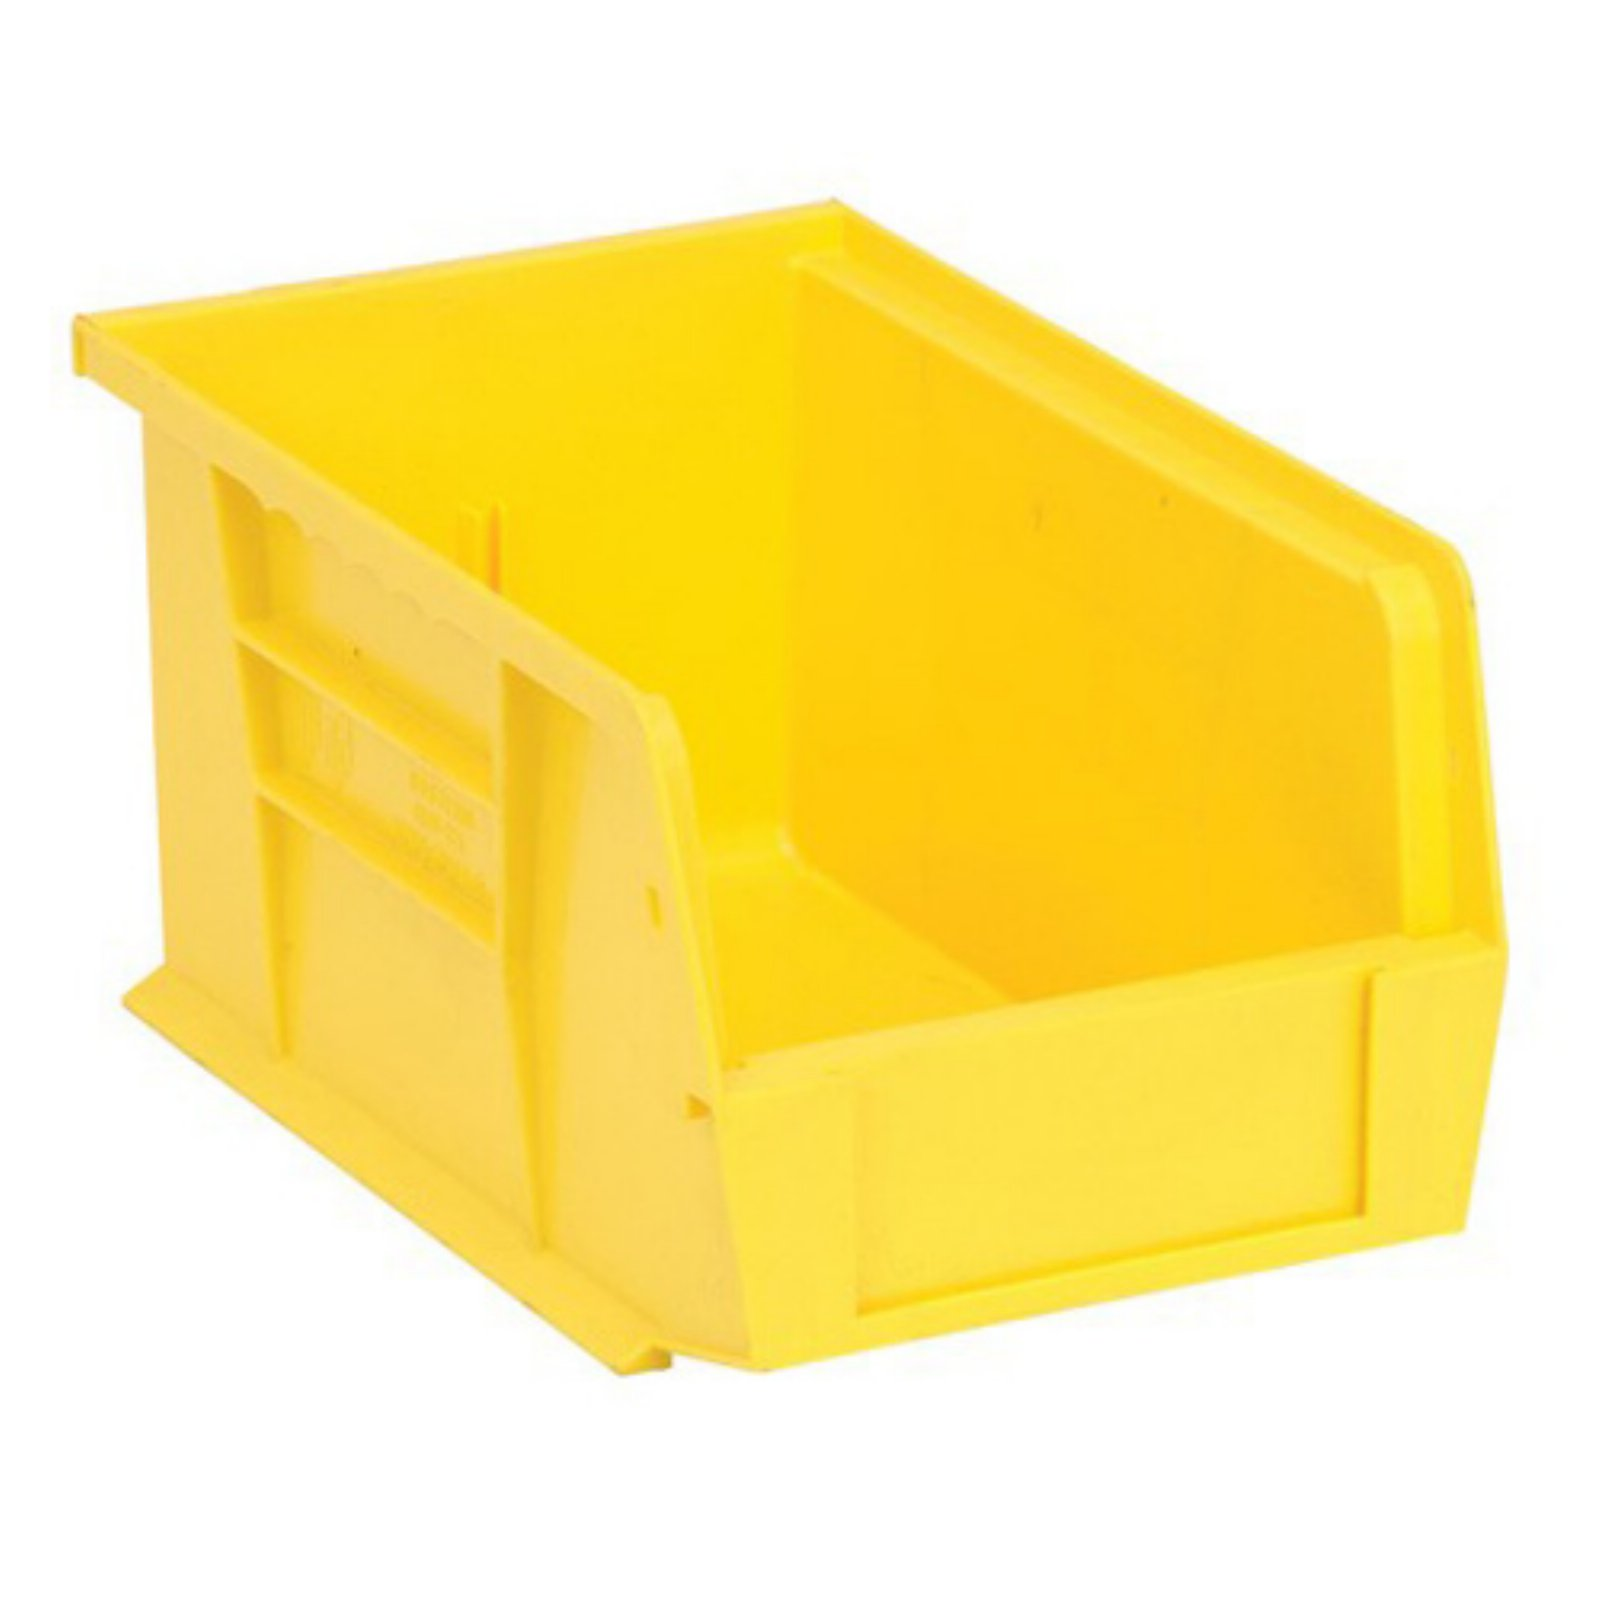 Quantum Storage 9l X 6w In Ultra Stack And Hang Bin Set Of 12 Stackable Plastic Storage Bins Storage Bins Stacking Bins